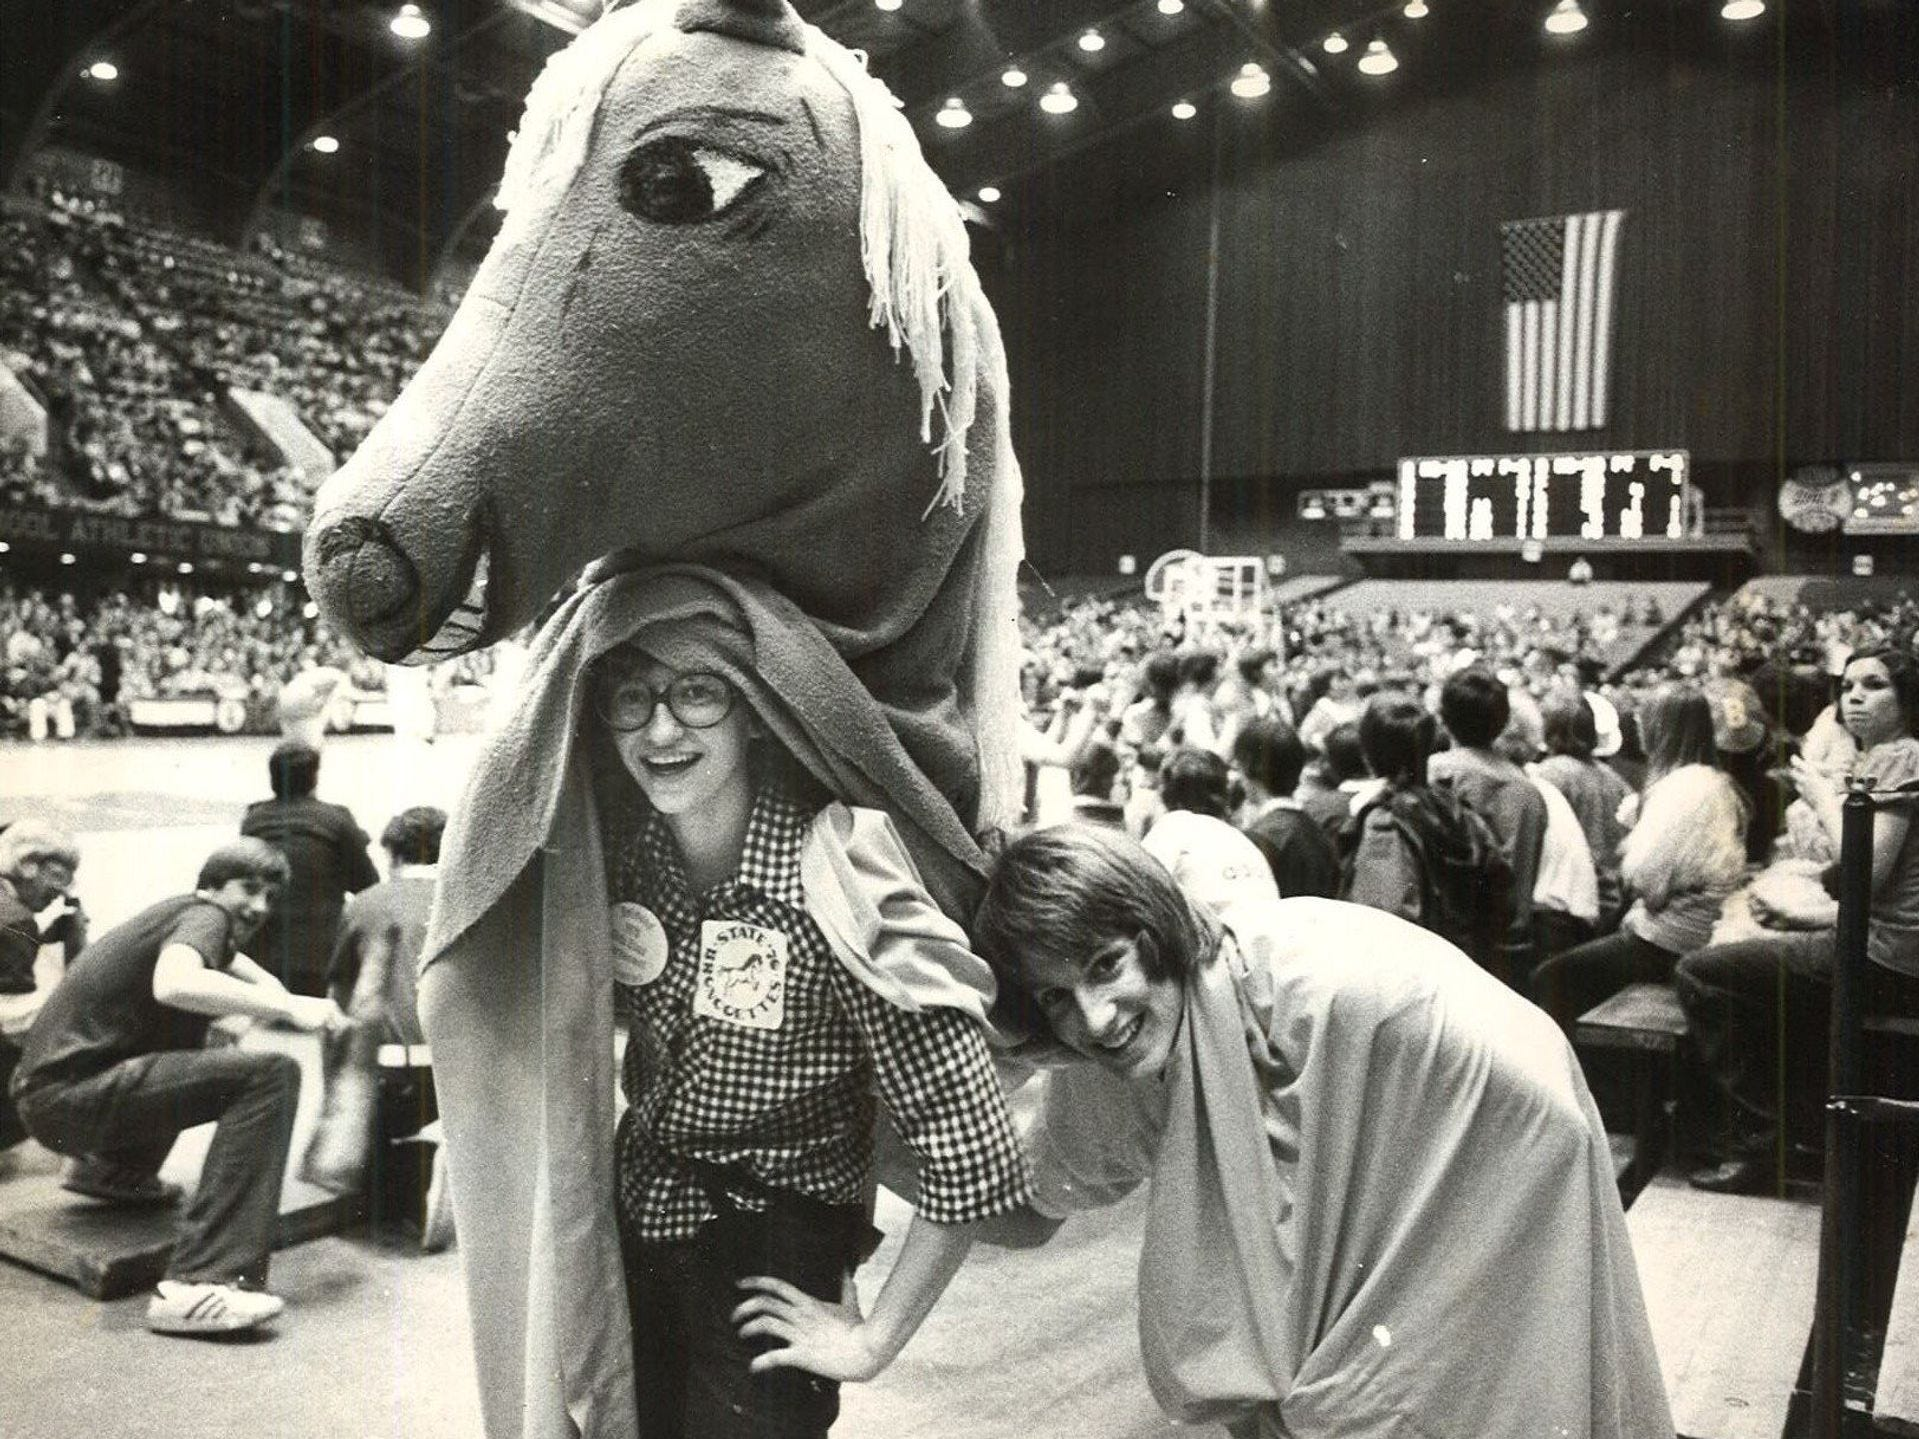 1976: Jane Jacobmeyer, 15, left, and Jay Gabrielson, 16, get a breath of fresh air after being the Belmond High School bronco mascot during the opening round of the state girls' basketball tournament at Veterans Memorial Auditorium. Belmond lost, 86-65. Register file photo